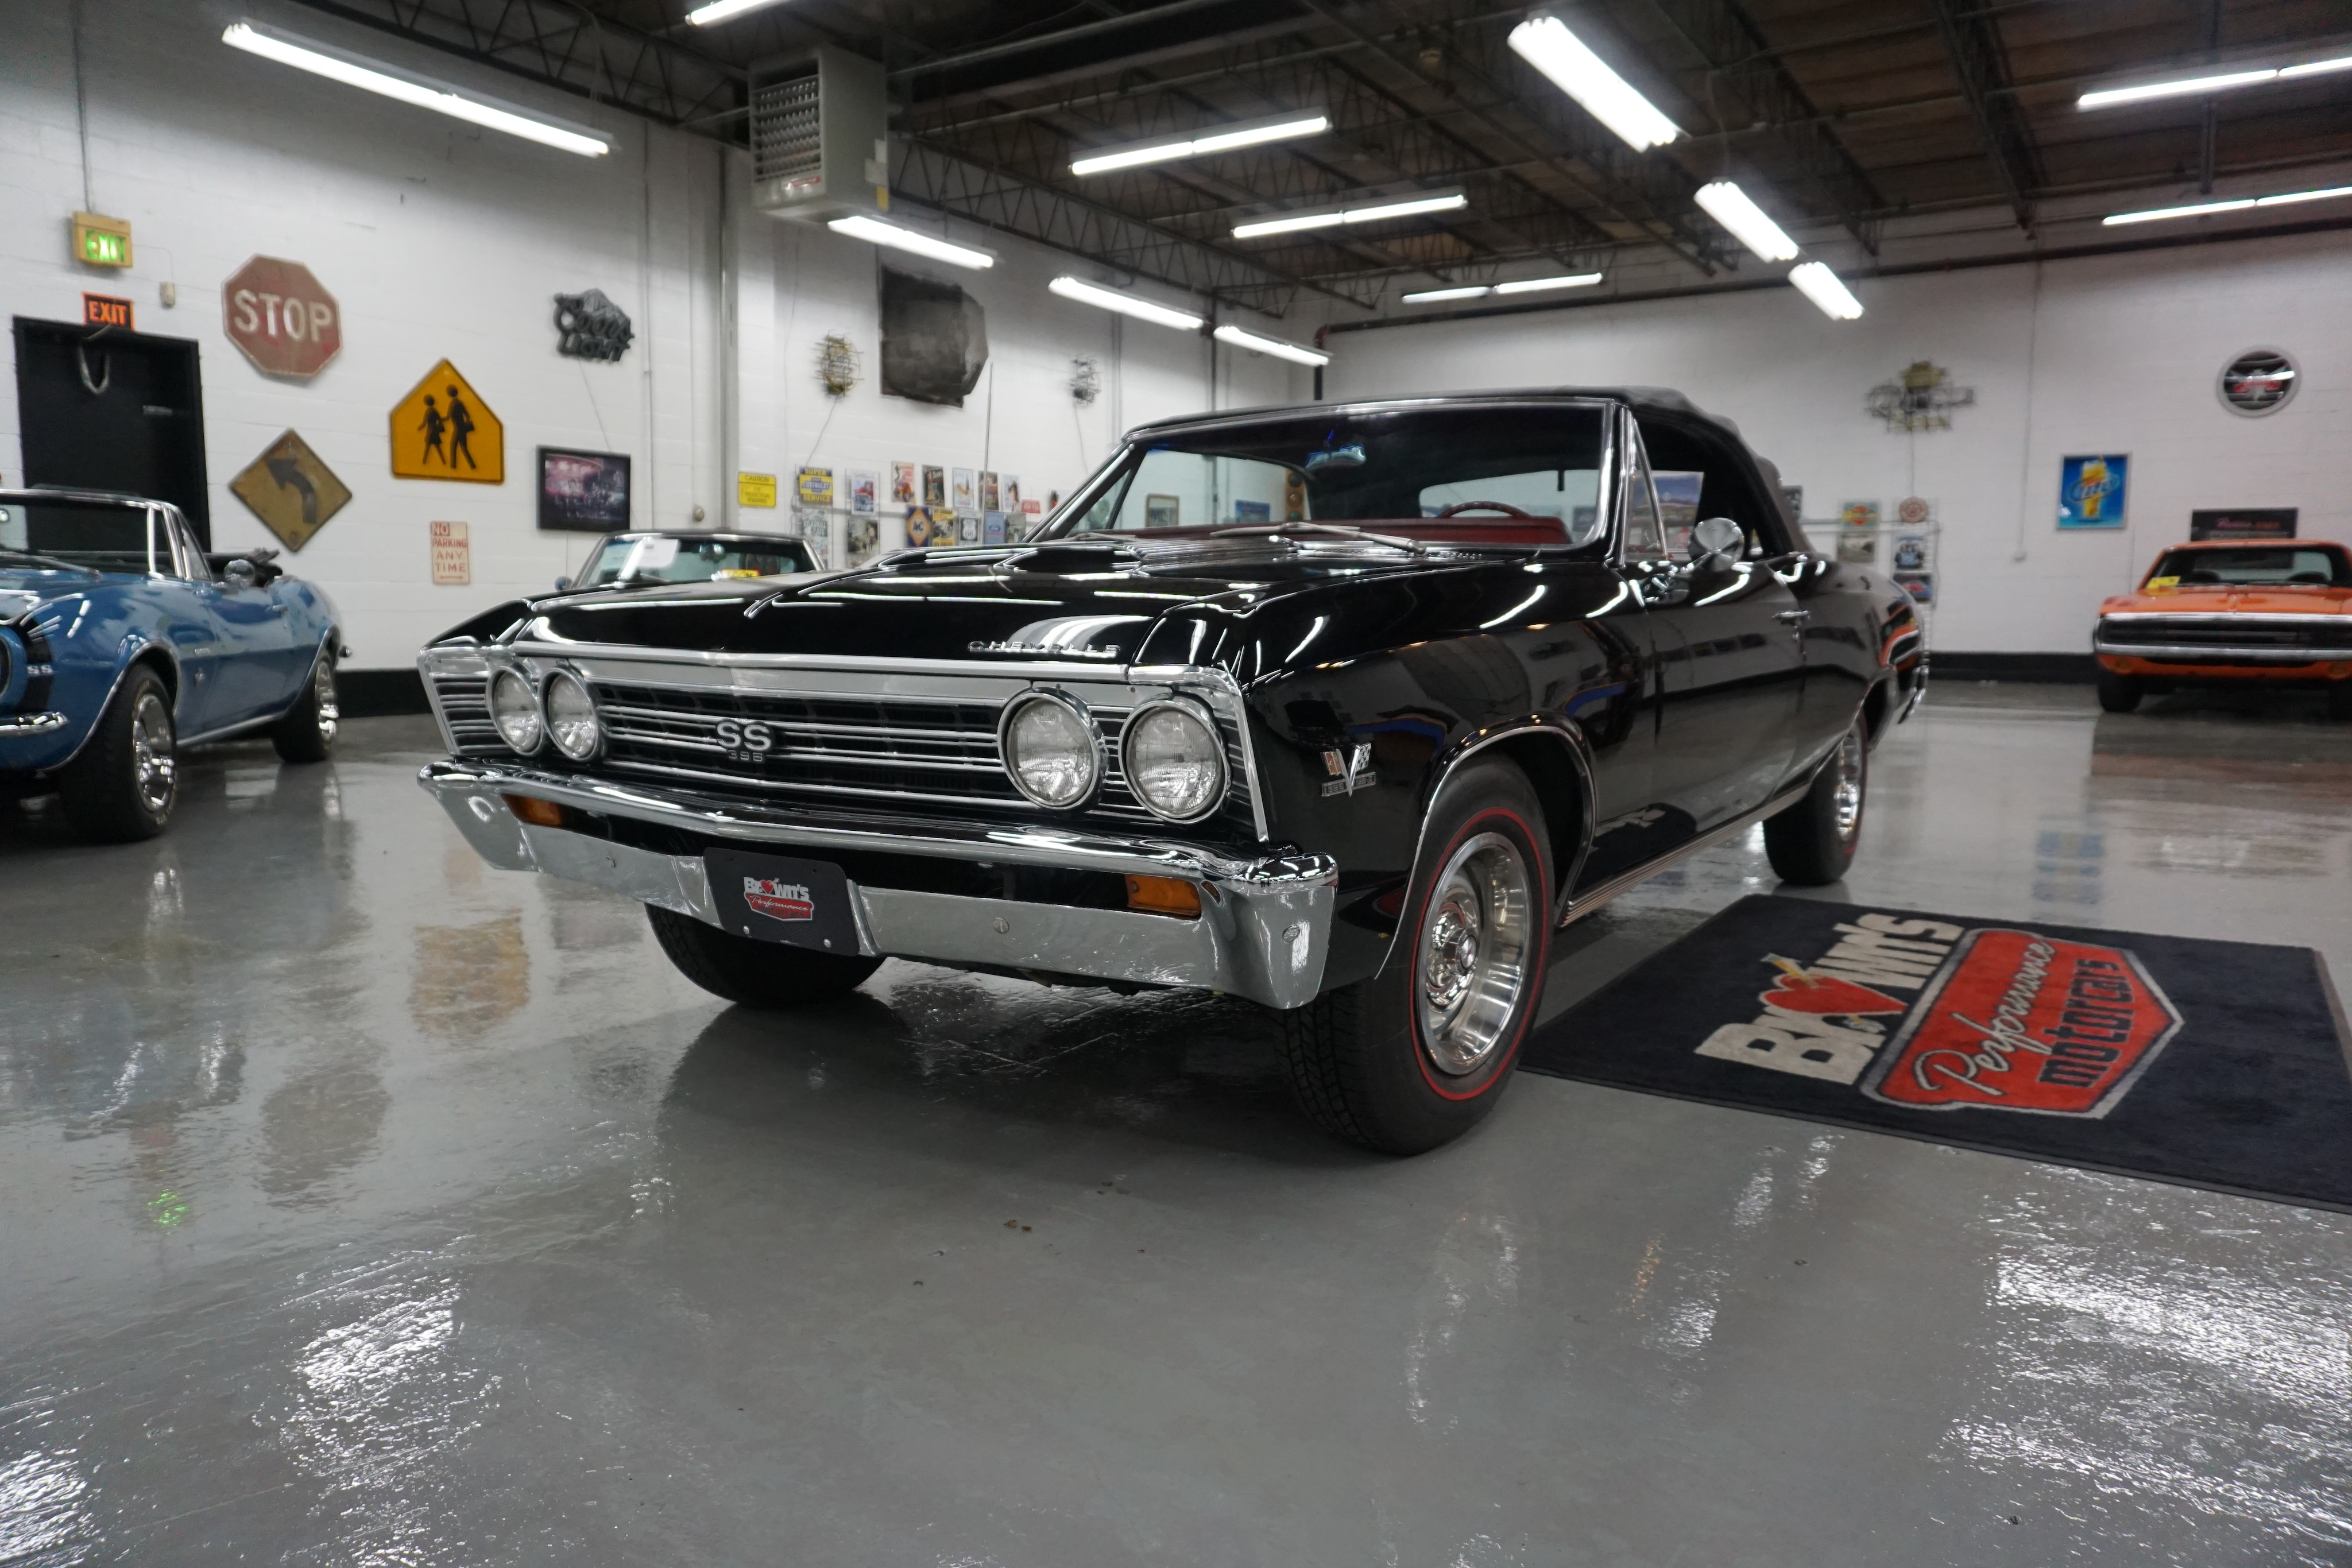 1967 Chevrolet Chevelle REAL NUMBERS MATCHING SS CONVERTIBLE Convertible